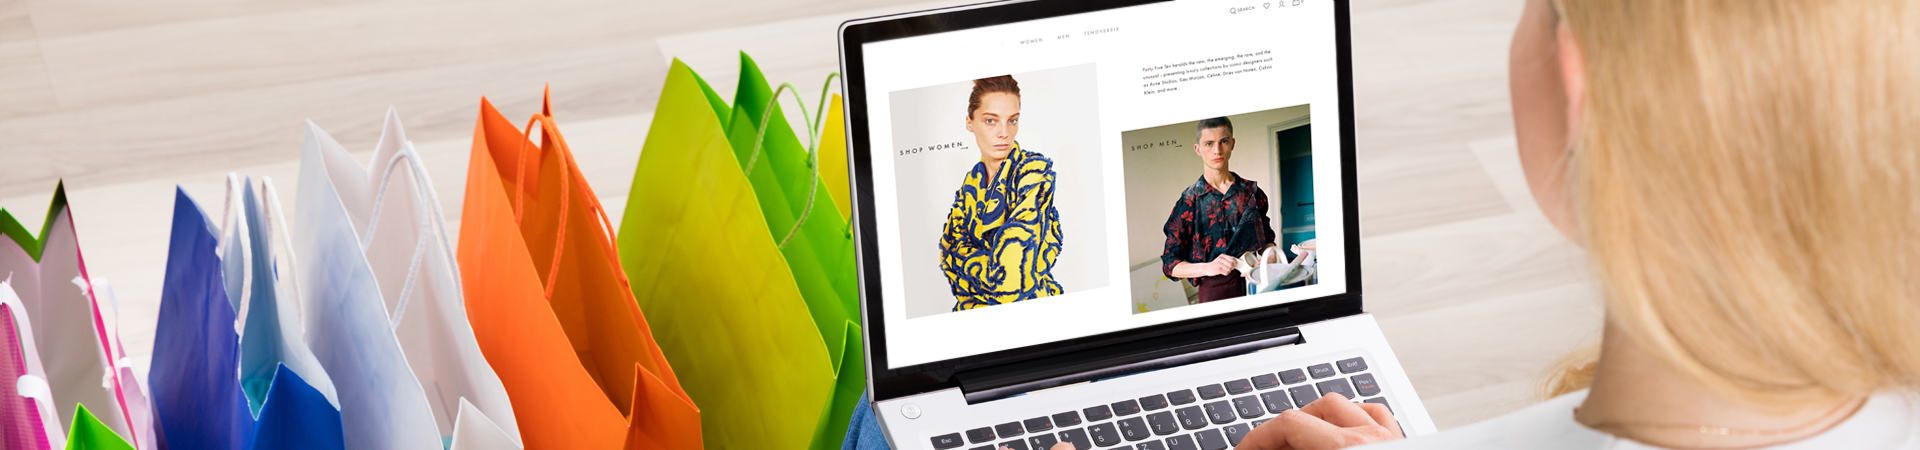 Magento Implementation with Enhanced Product and Content Management for a Fashion Retailer